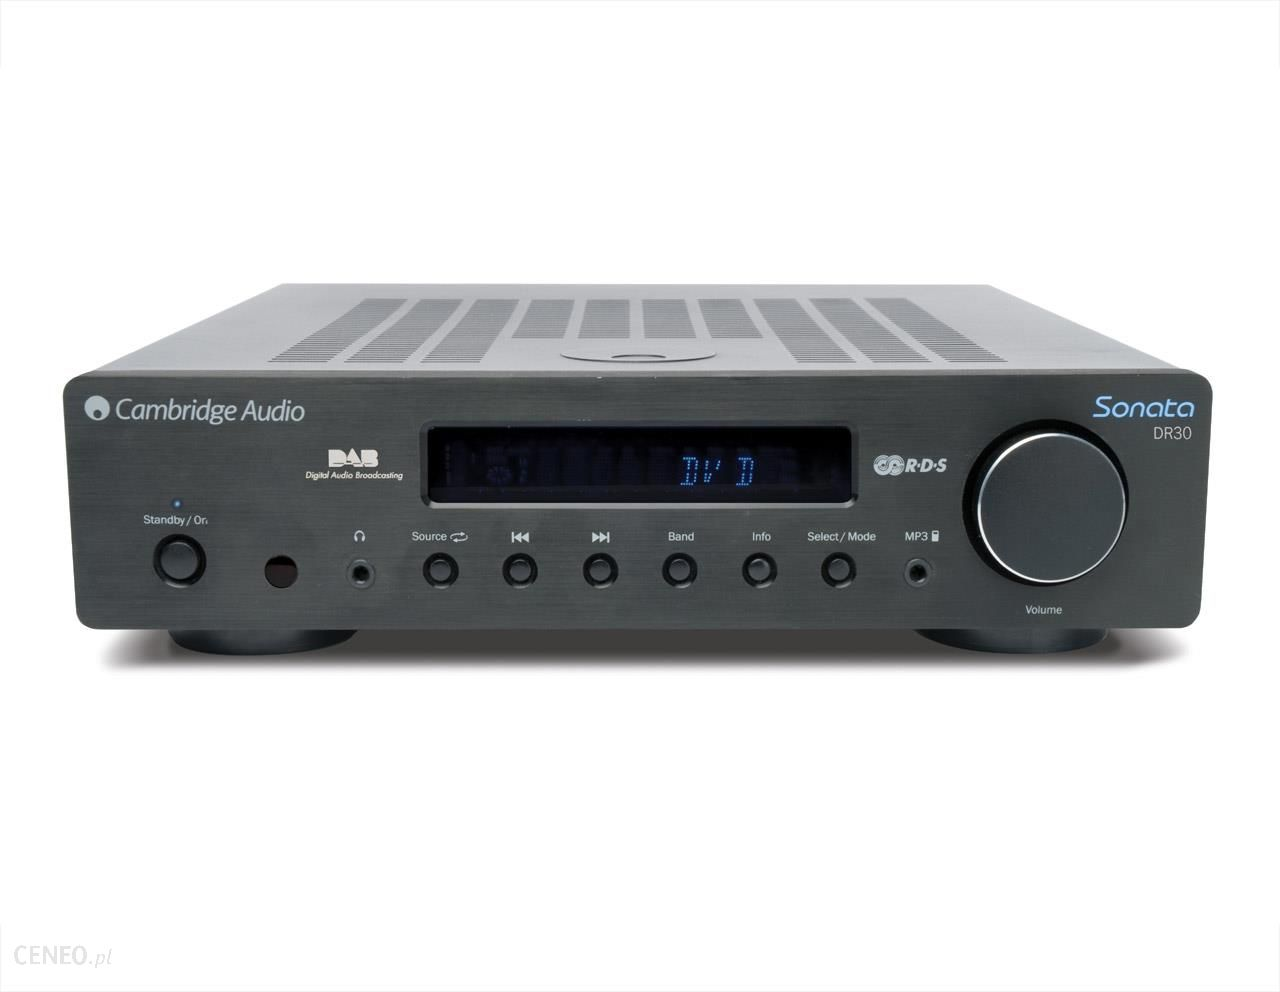 Cambridge Audio Sonata DR 30